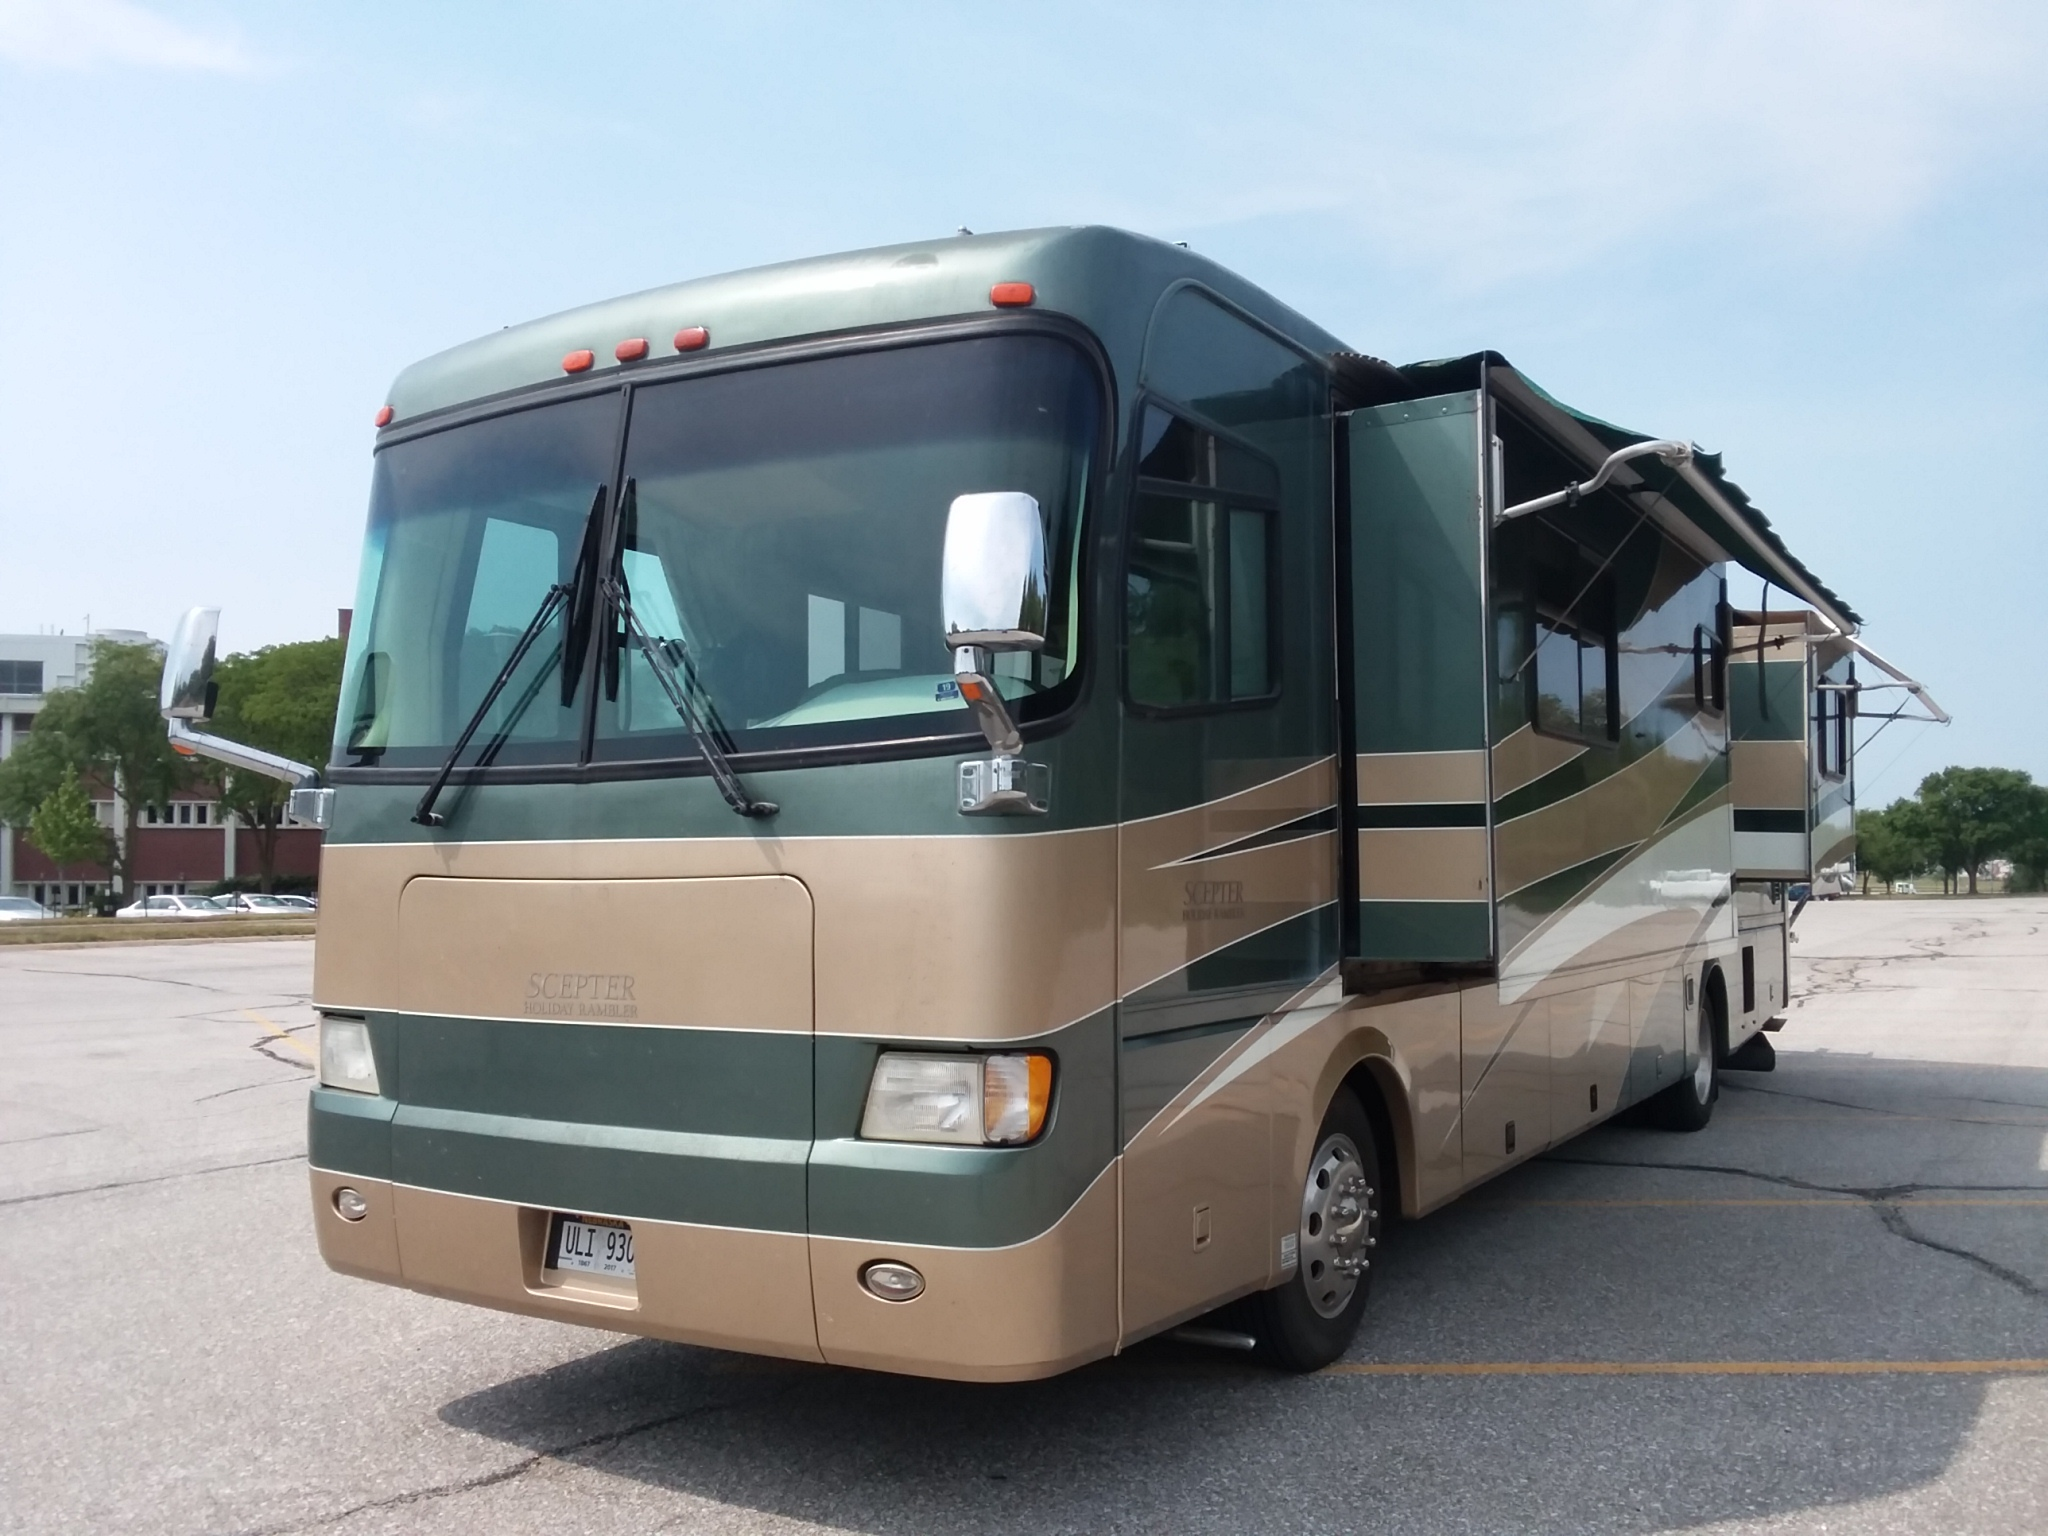 Photo 2001 Holiday Rambler SCEPTER 38PDQ $ 38750     Get Financing as low as 418.50mo      Get Financing as low as 418.50mo